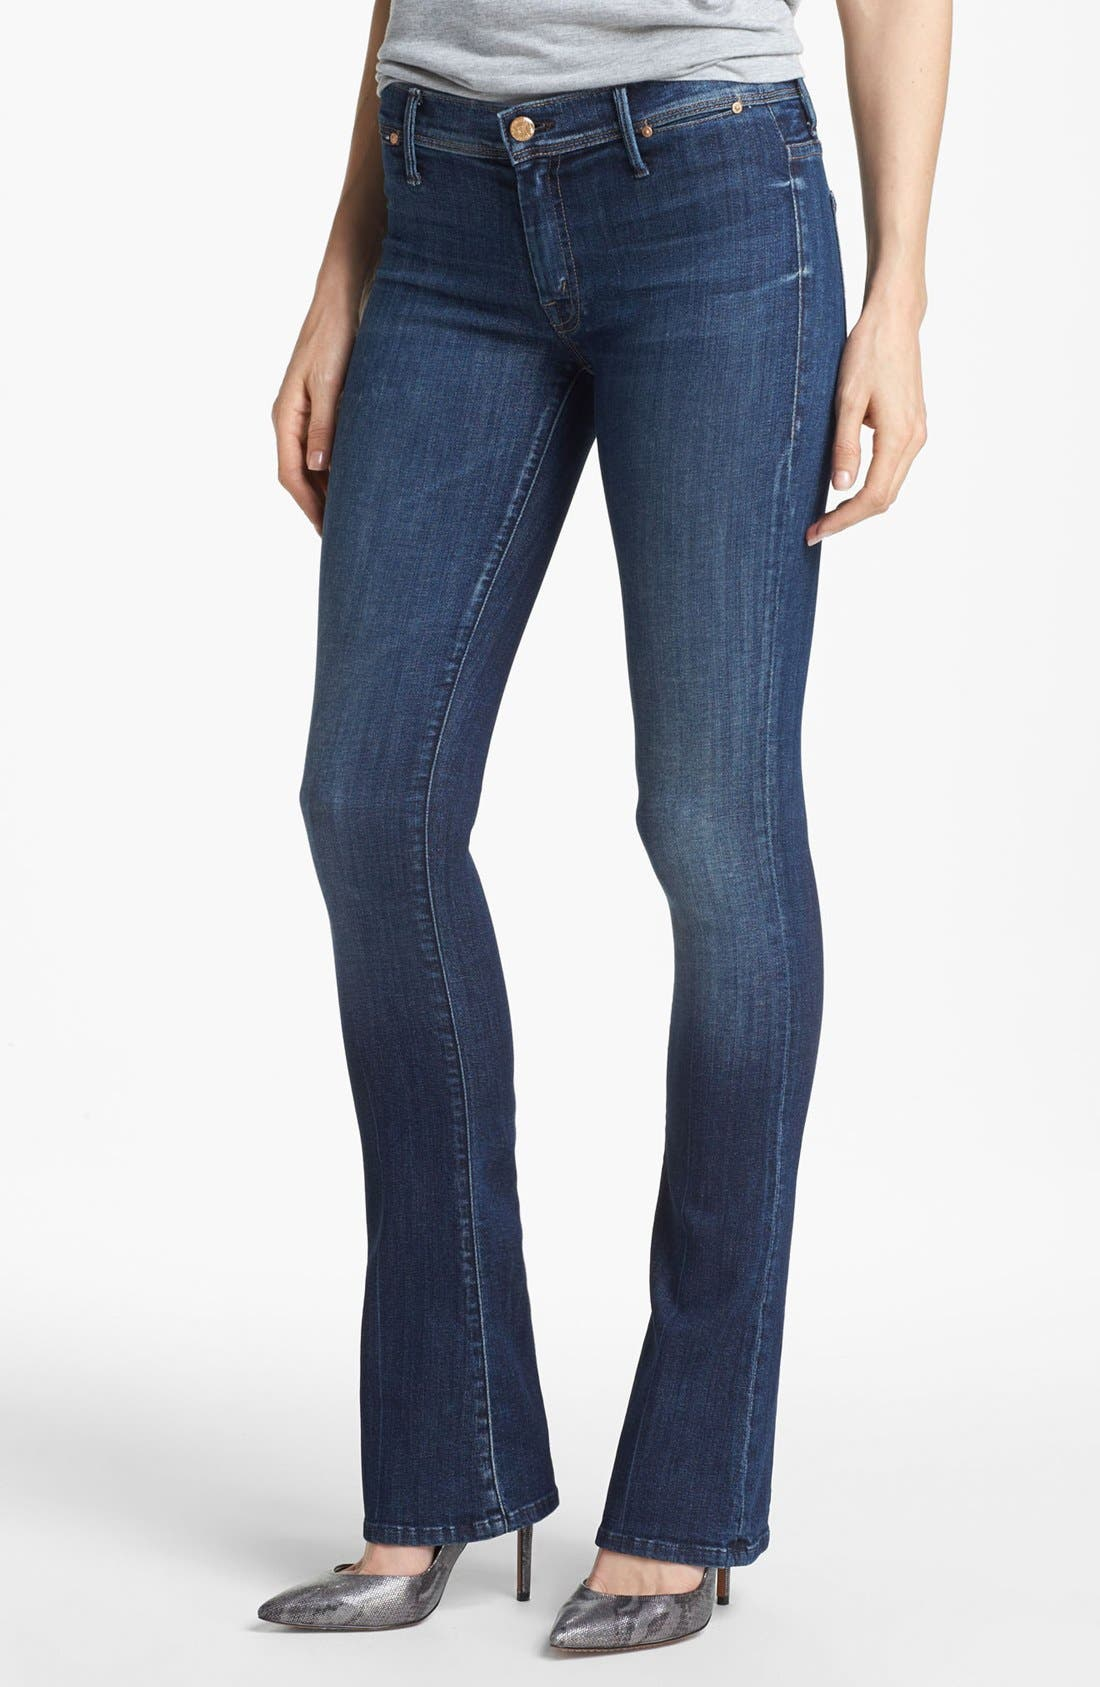 'The Daydreamer' Skinny Flare Leg Jeans,                         Main,                         color, 410